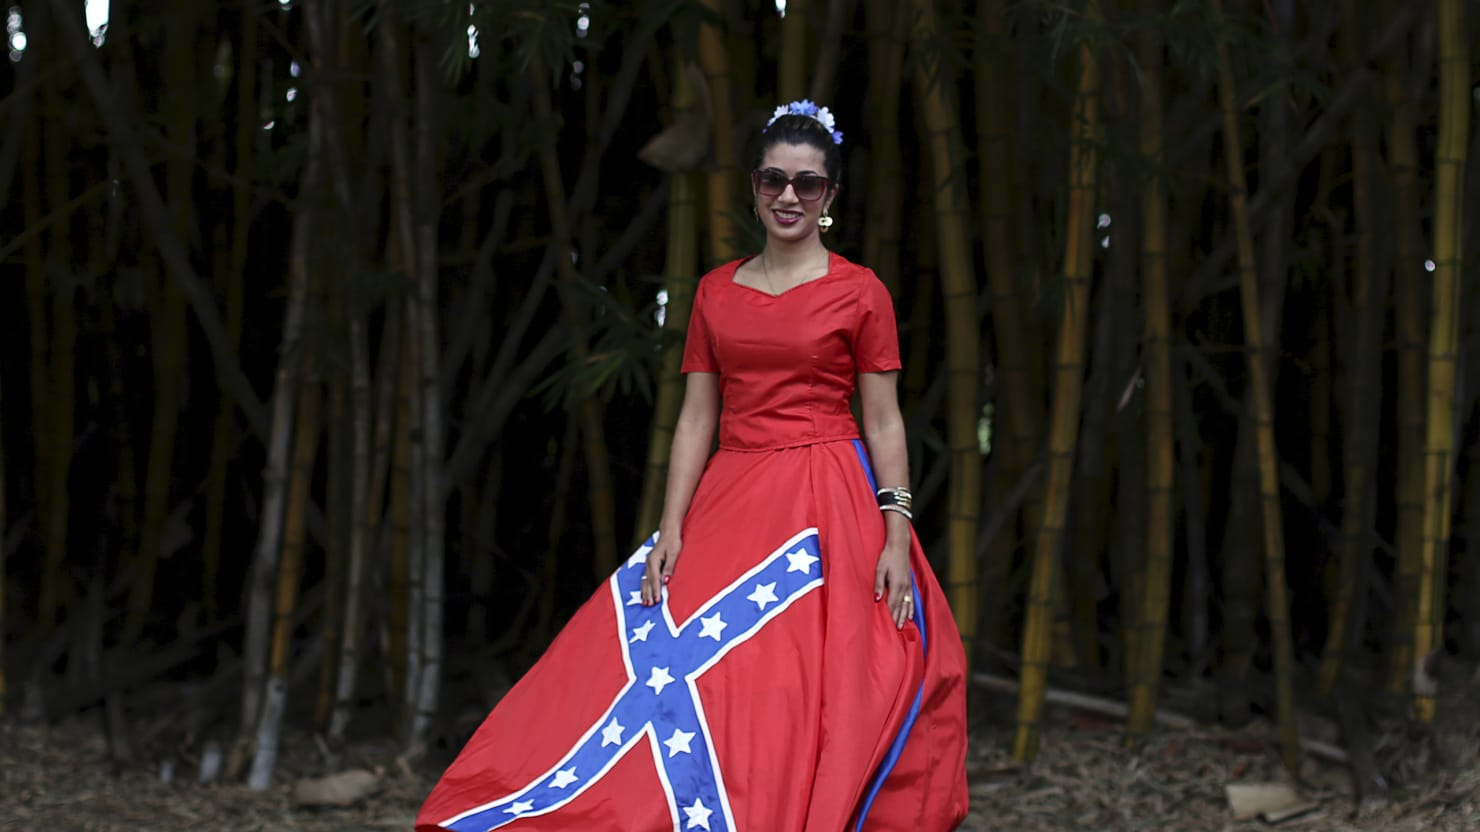 The Confederacy Lives on in Brazil